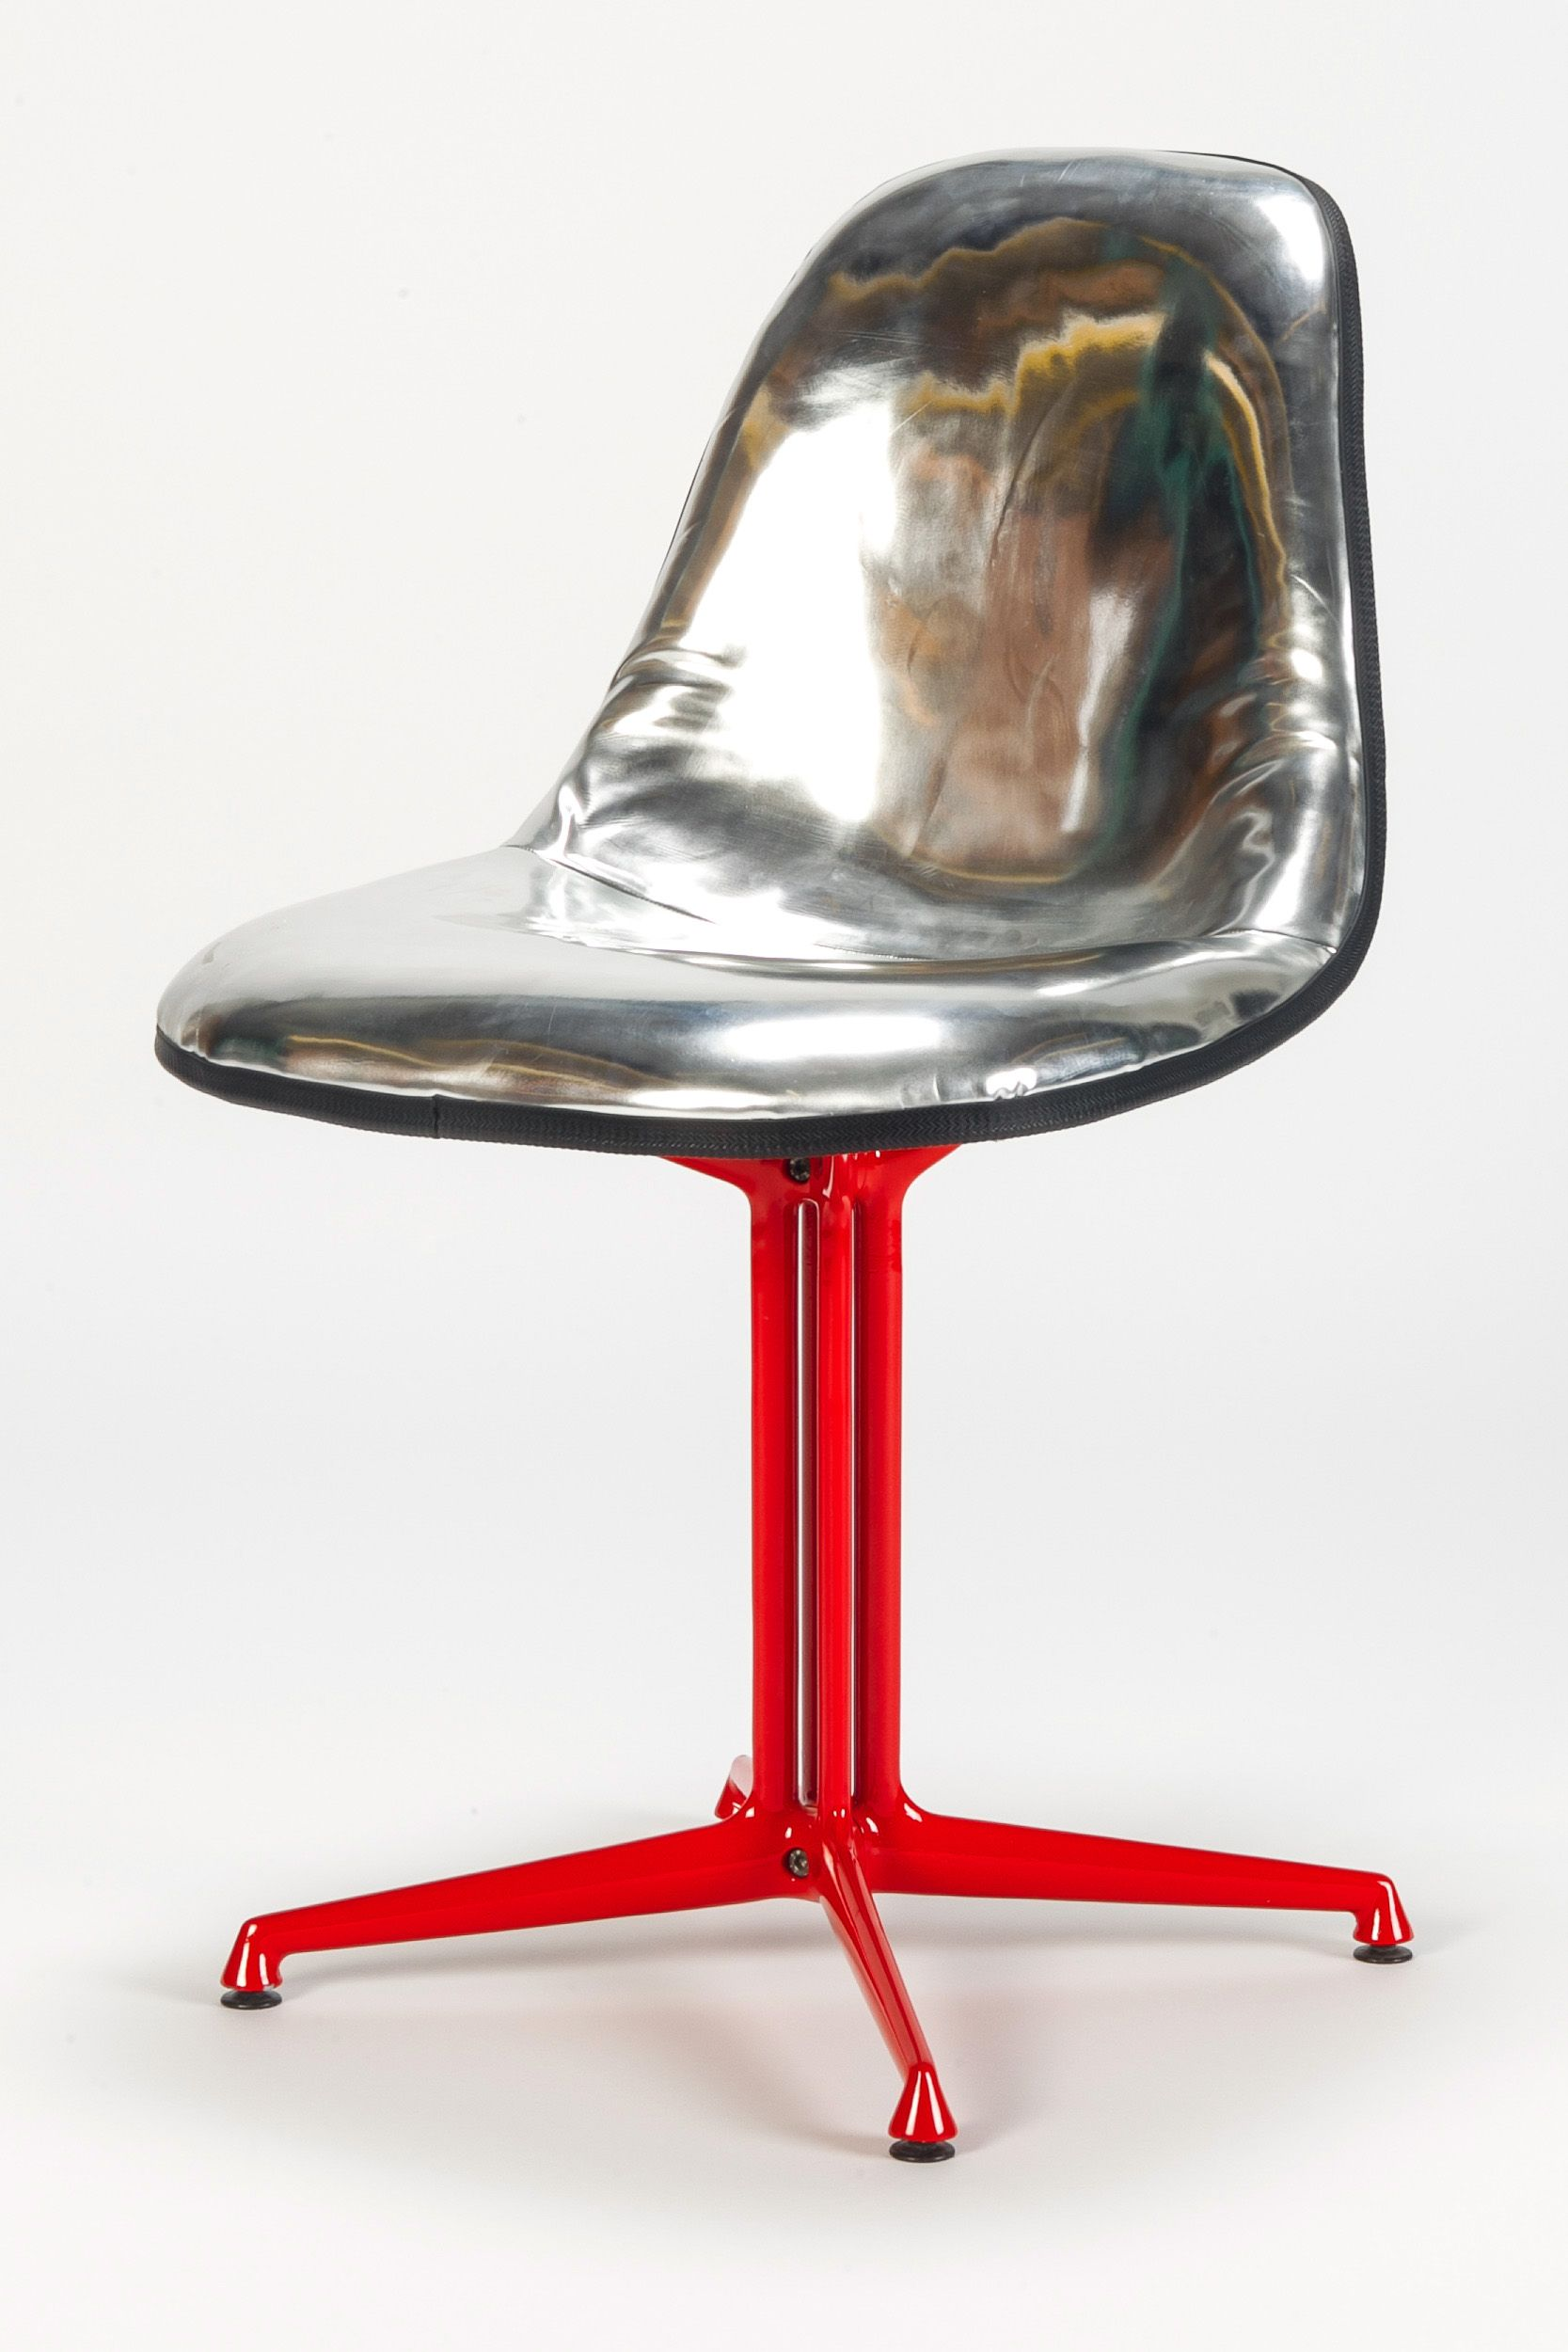 Eames Disco Chair Hmph I Just Want To Correct That This Is A Tarted Up Upholstered Eames Side Shell Modern Retro Furniture Eames Furniture Design Modern